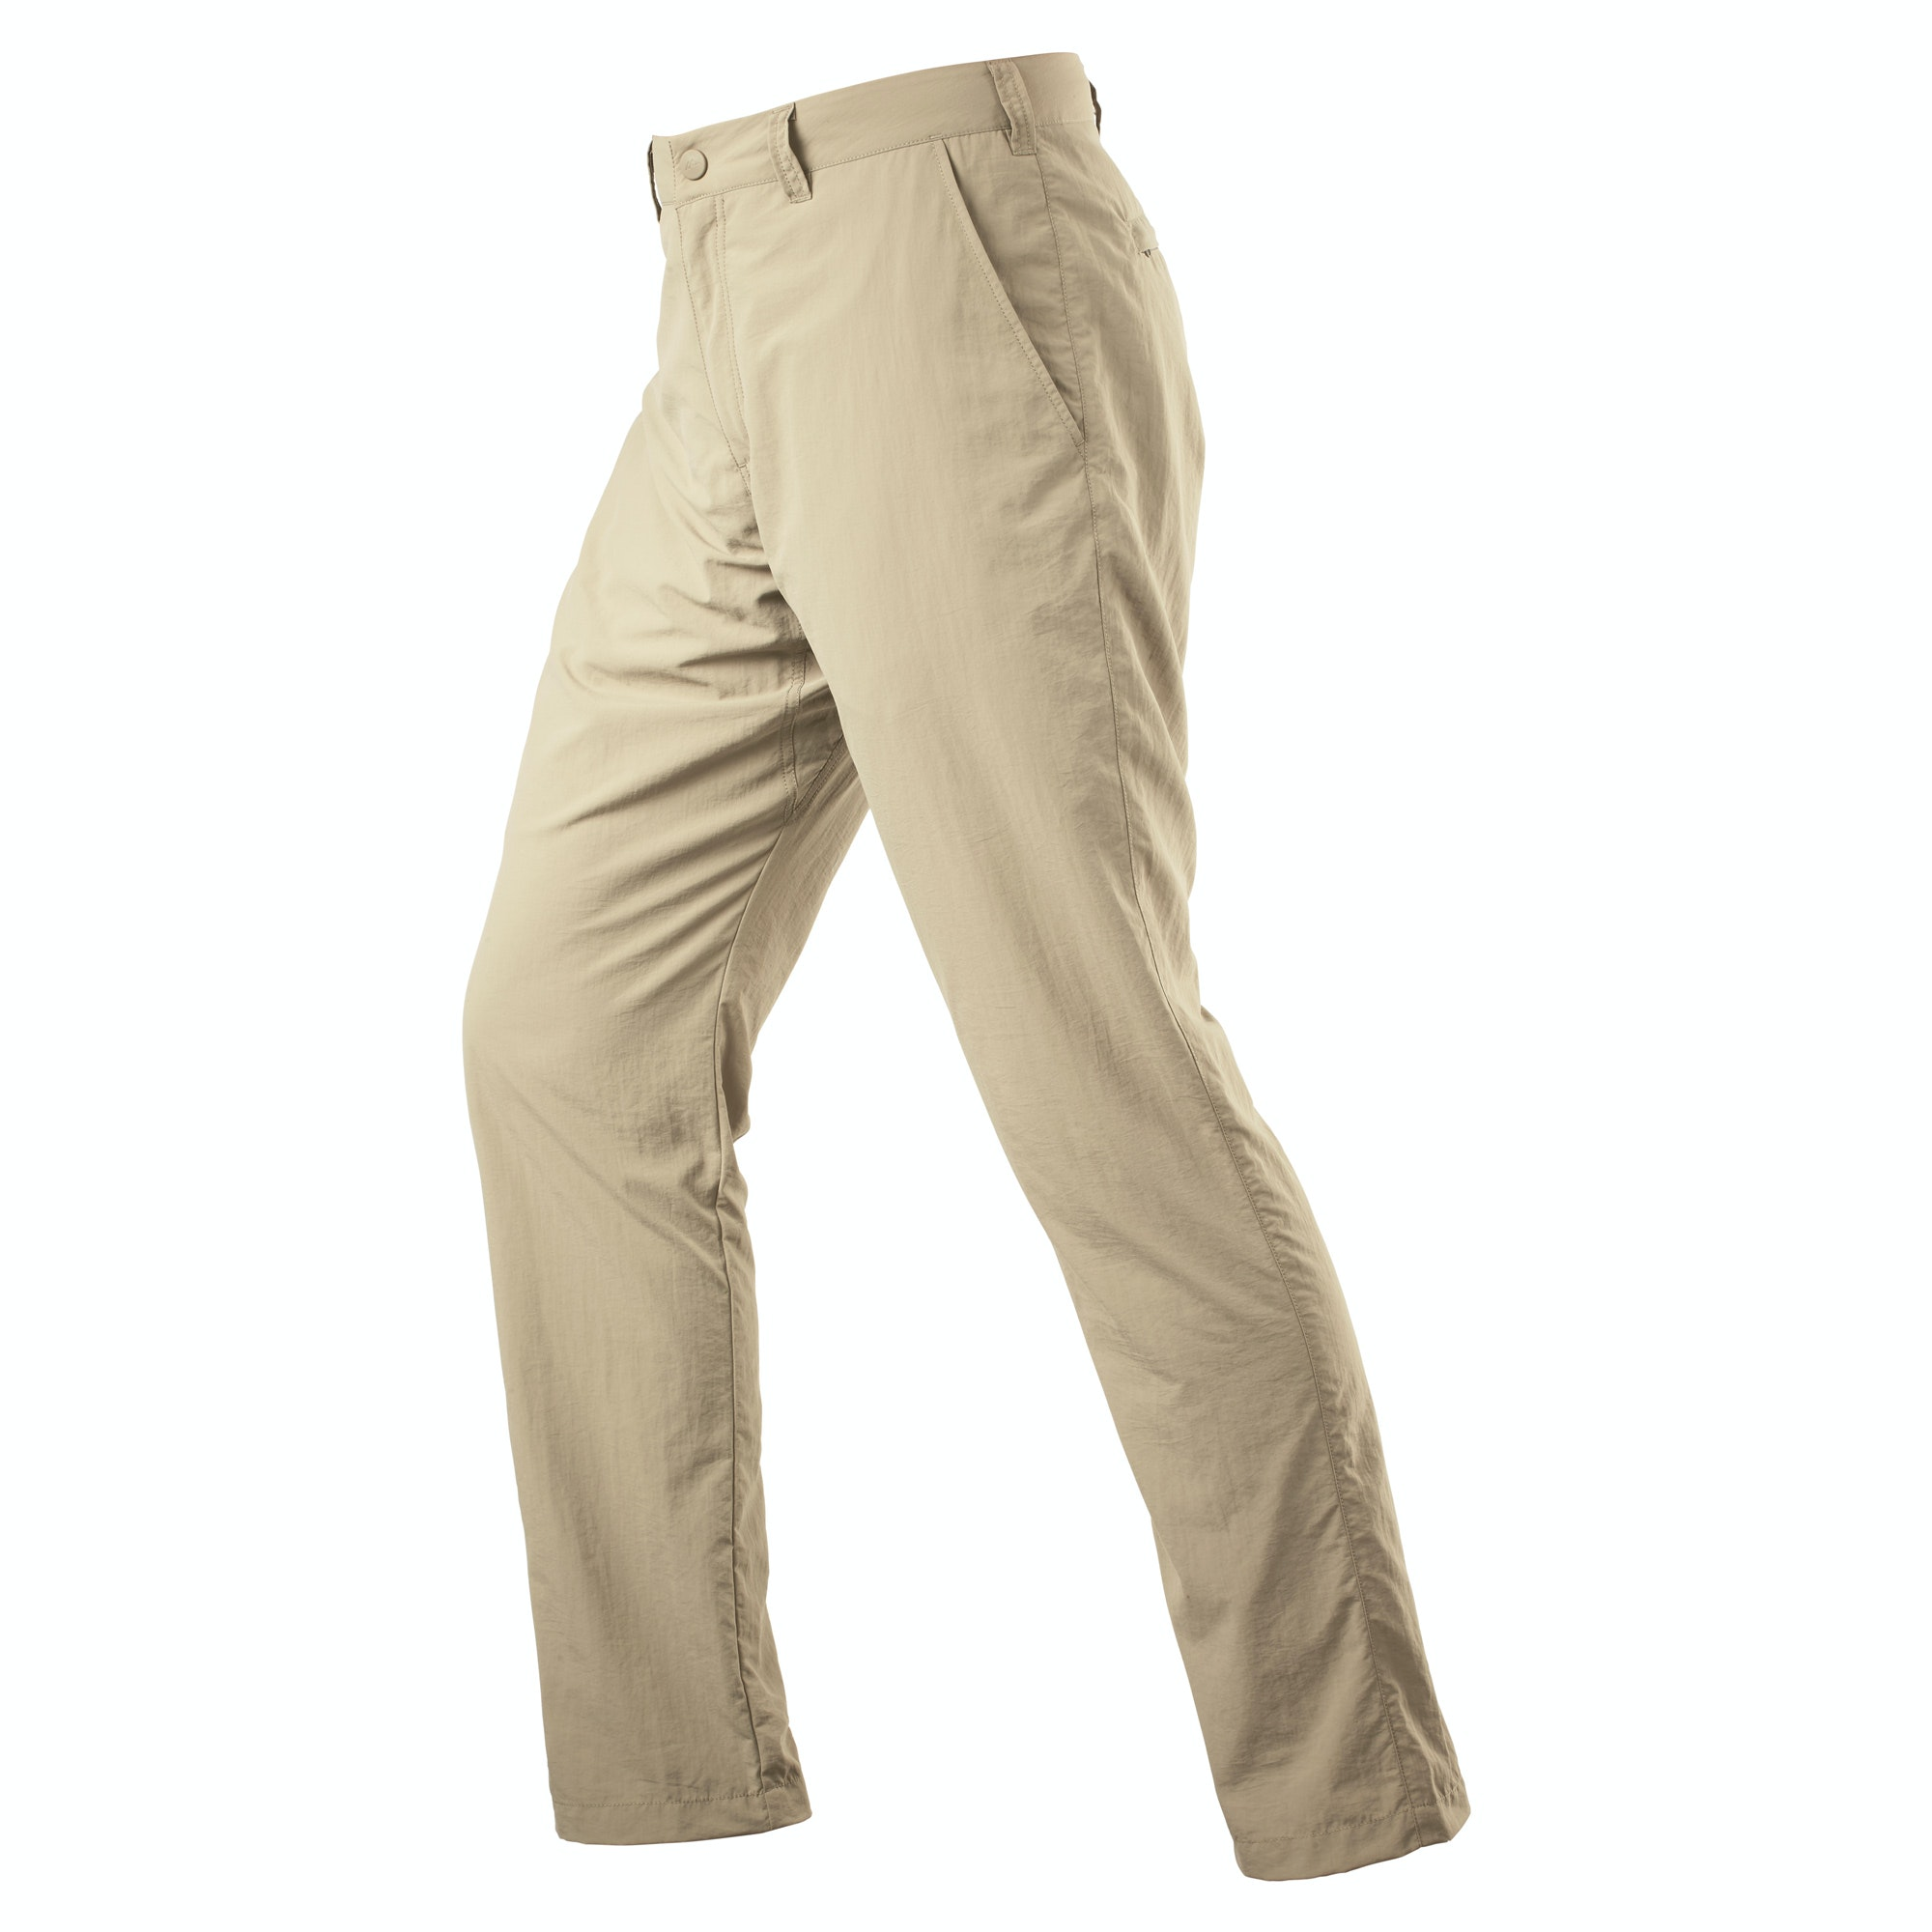 Expand your selection of casual trousers with classic men's chinos, chunky cords, rugged cargo trousers or smooth, Casual Trousers and Chinos. Lightweight Regular Fit Chinos.